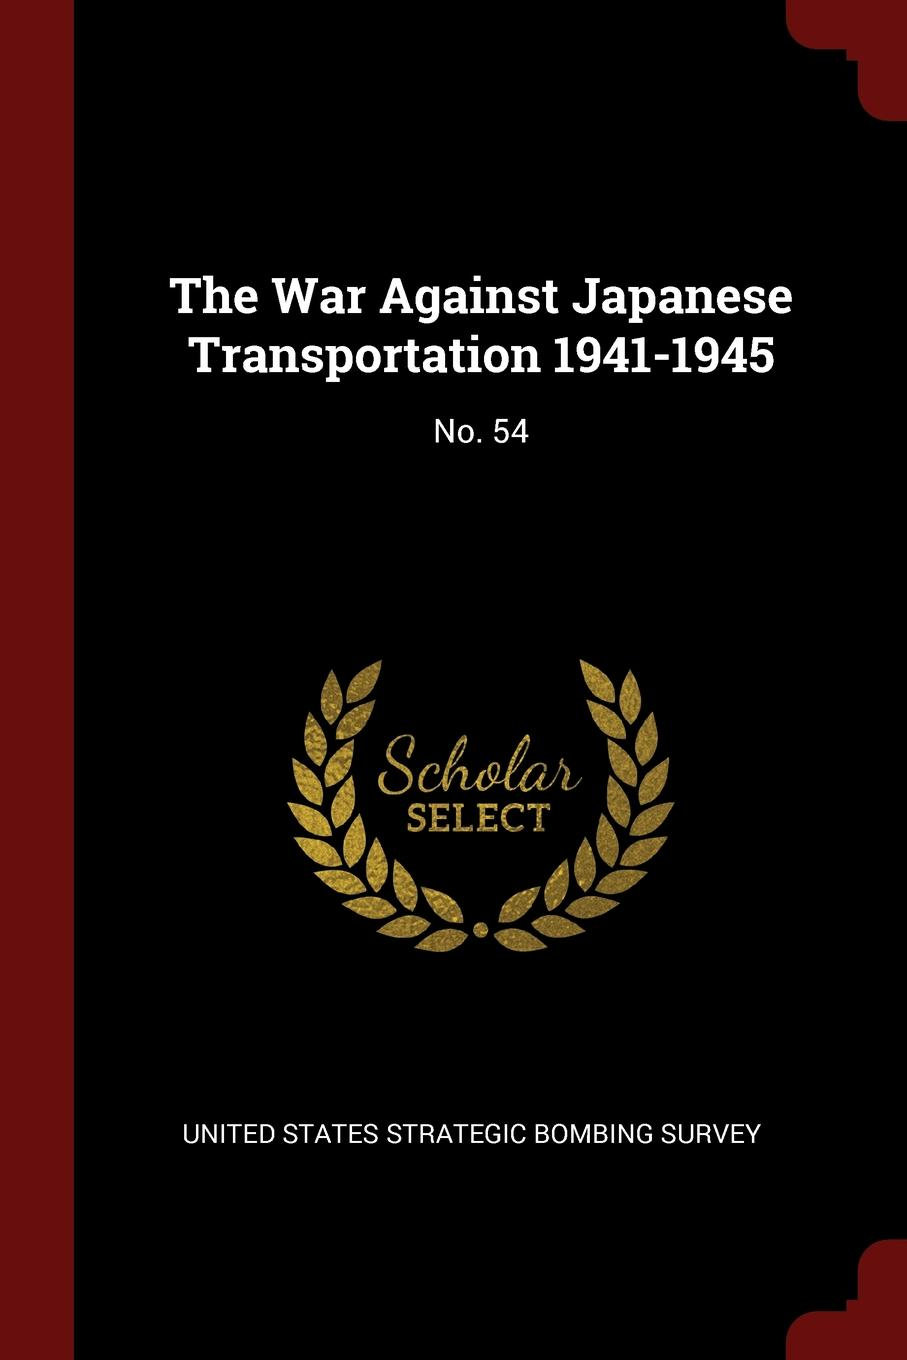 The War Against Japanese Transportation 1941-1945. No. 54